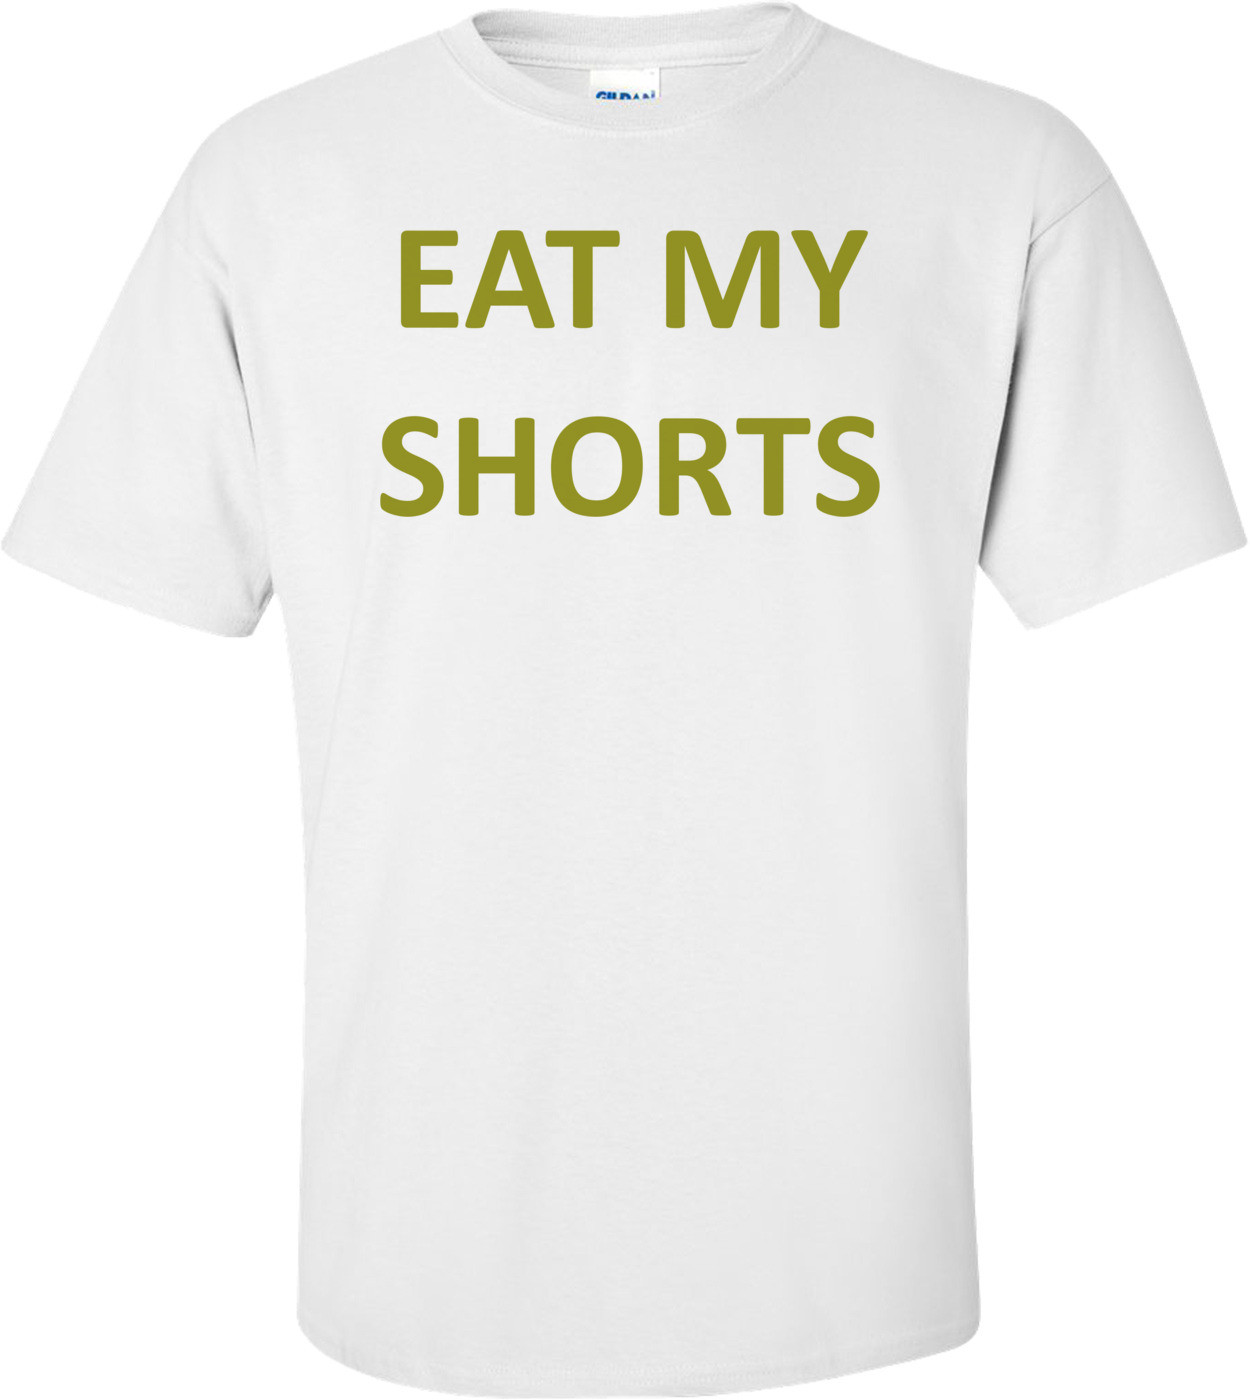 EAT MY SHORTS